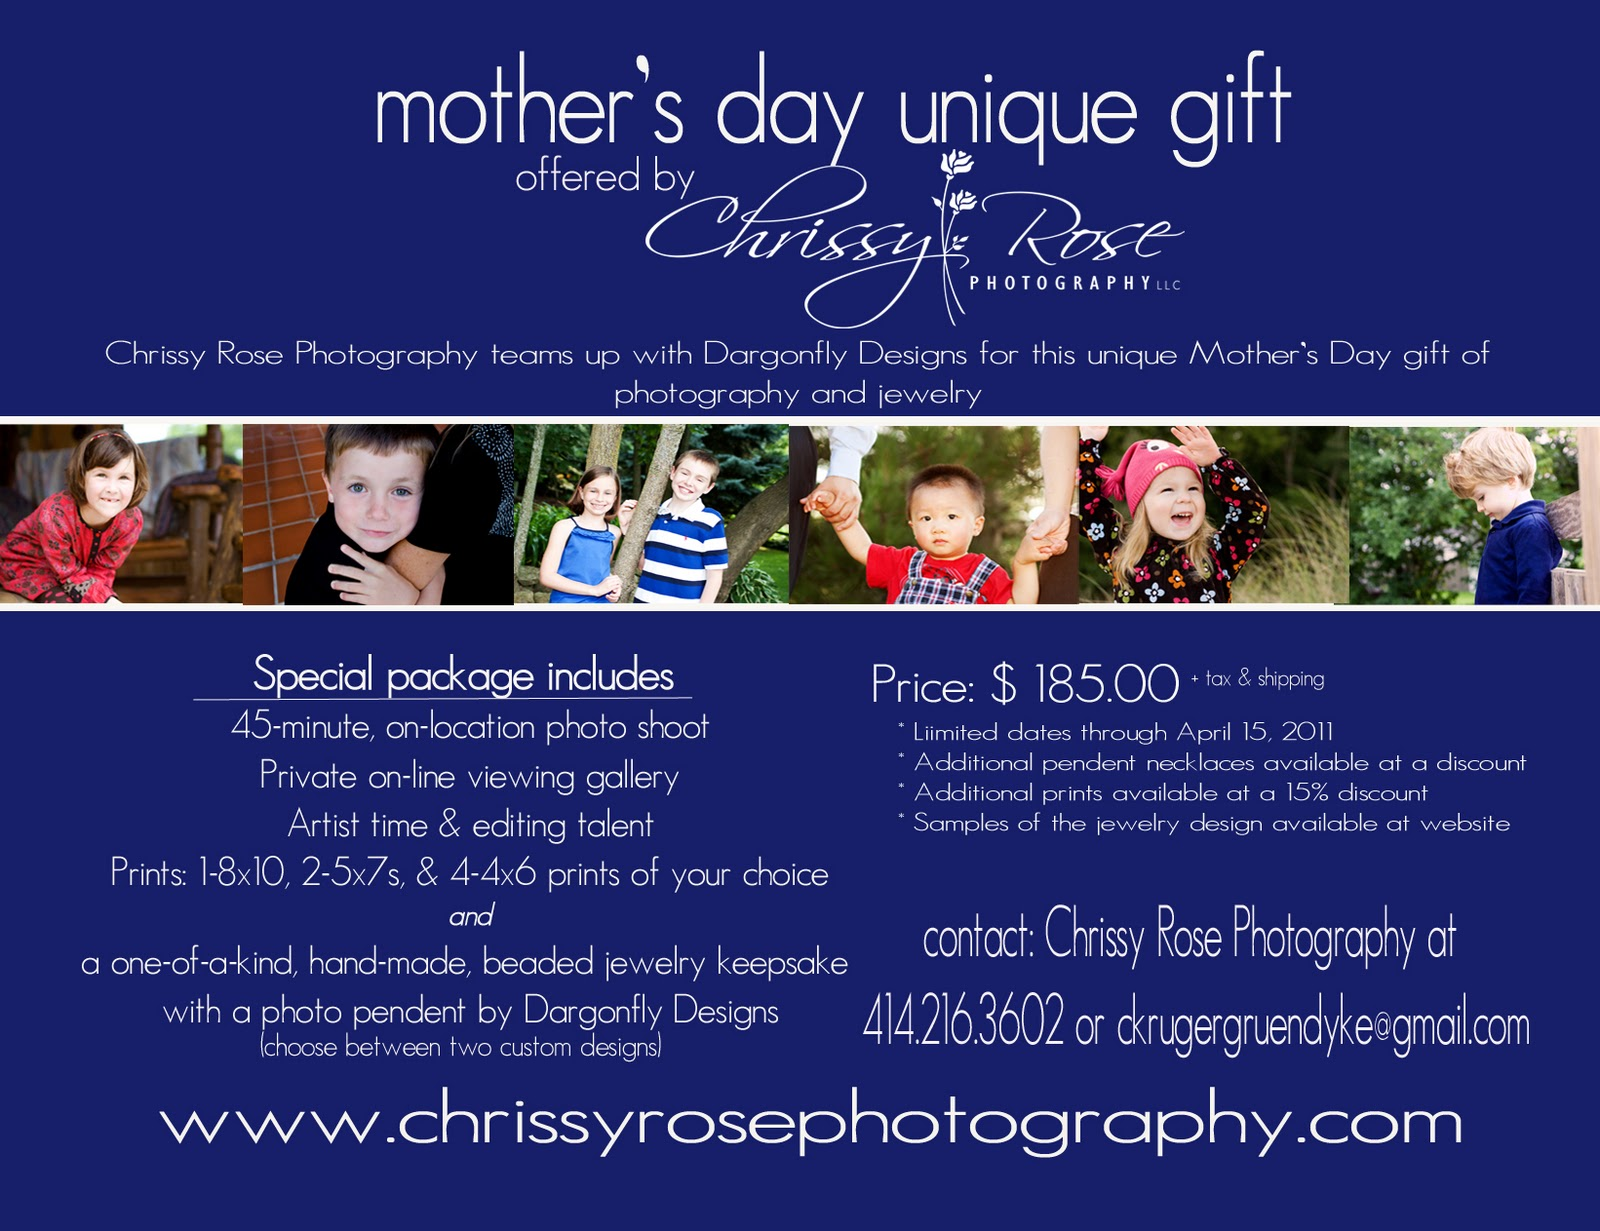 Chrissy Rose Photography: Mother's Day Photo Special ...